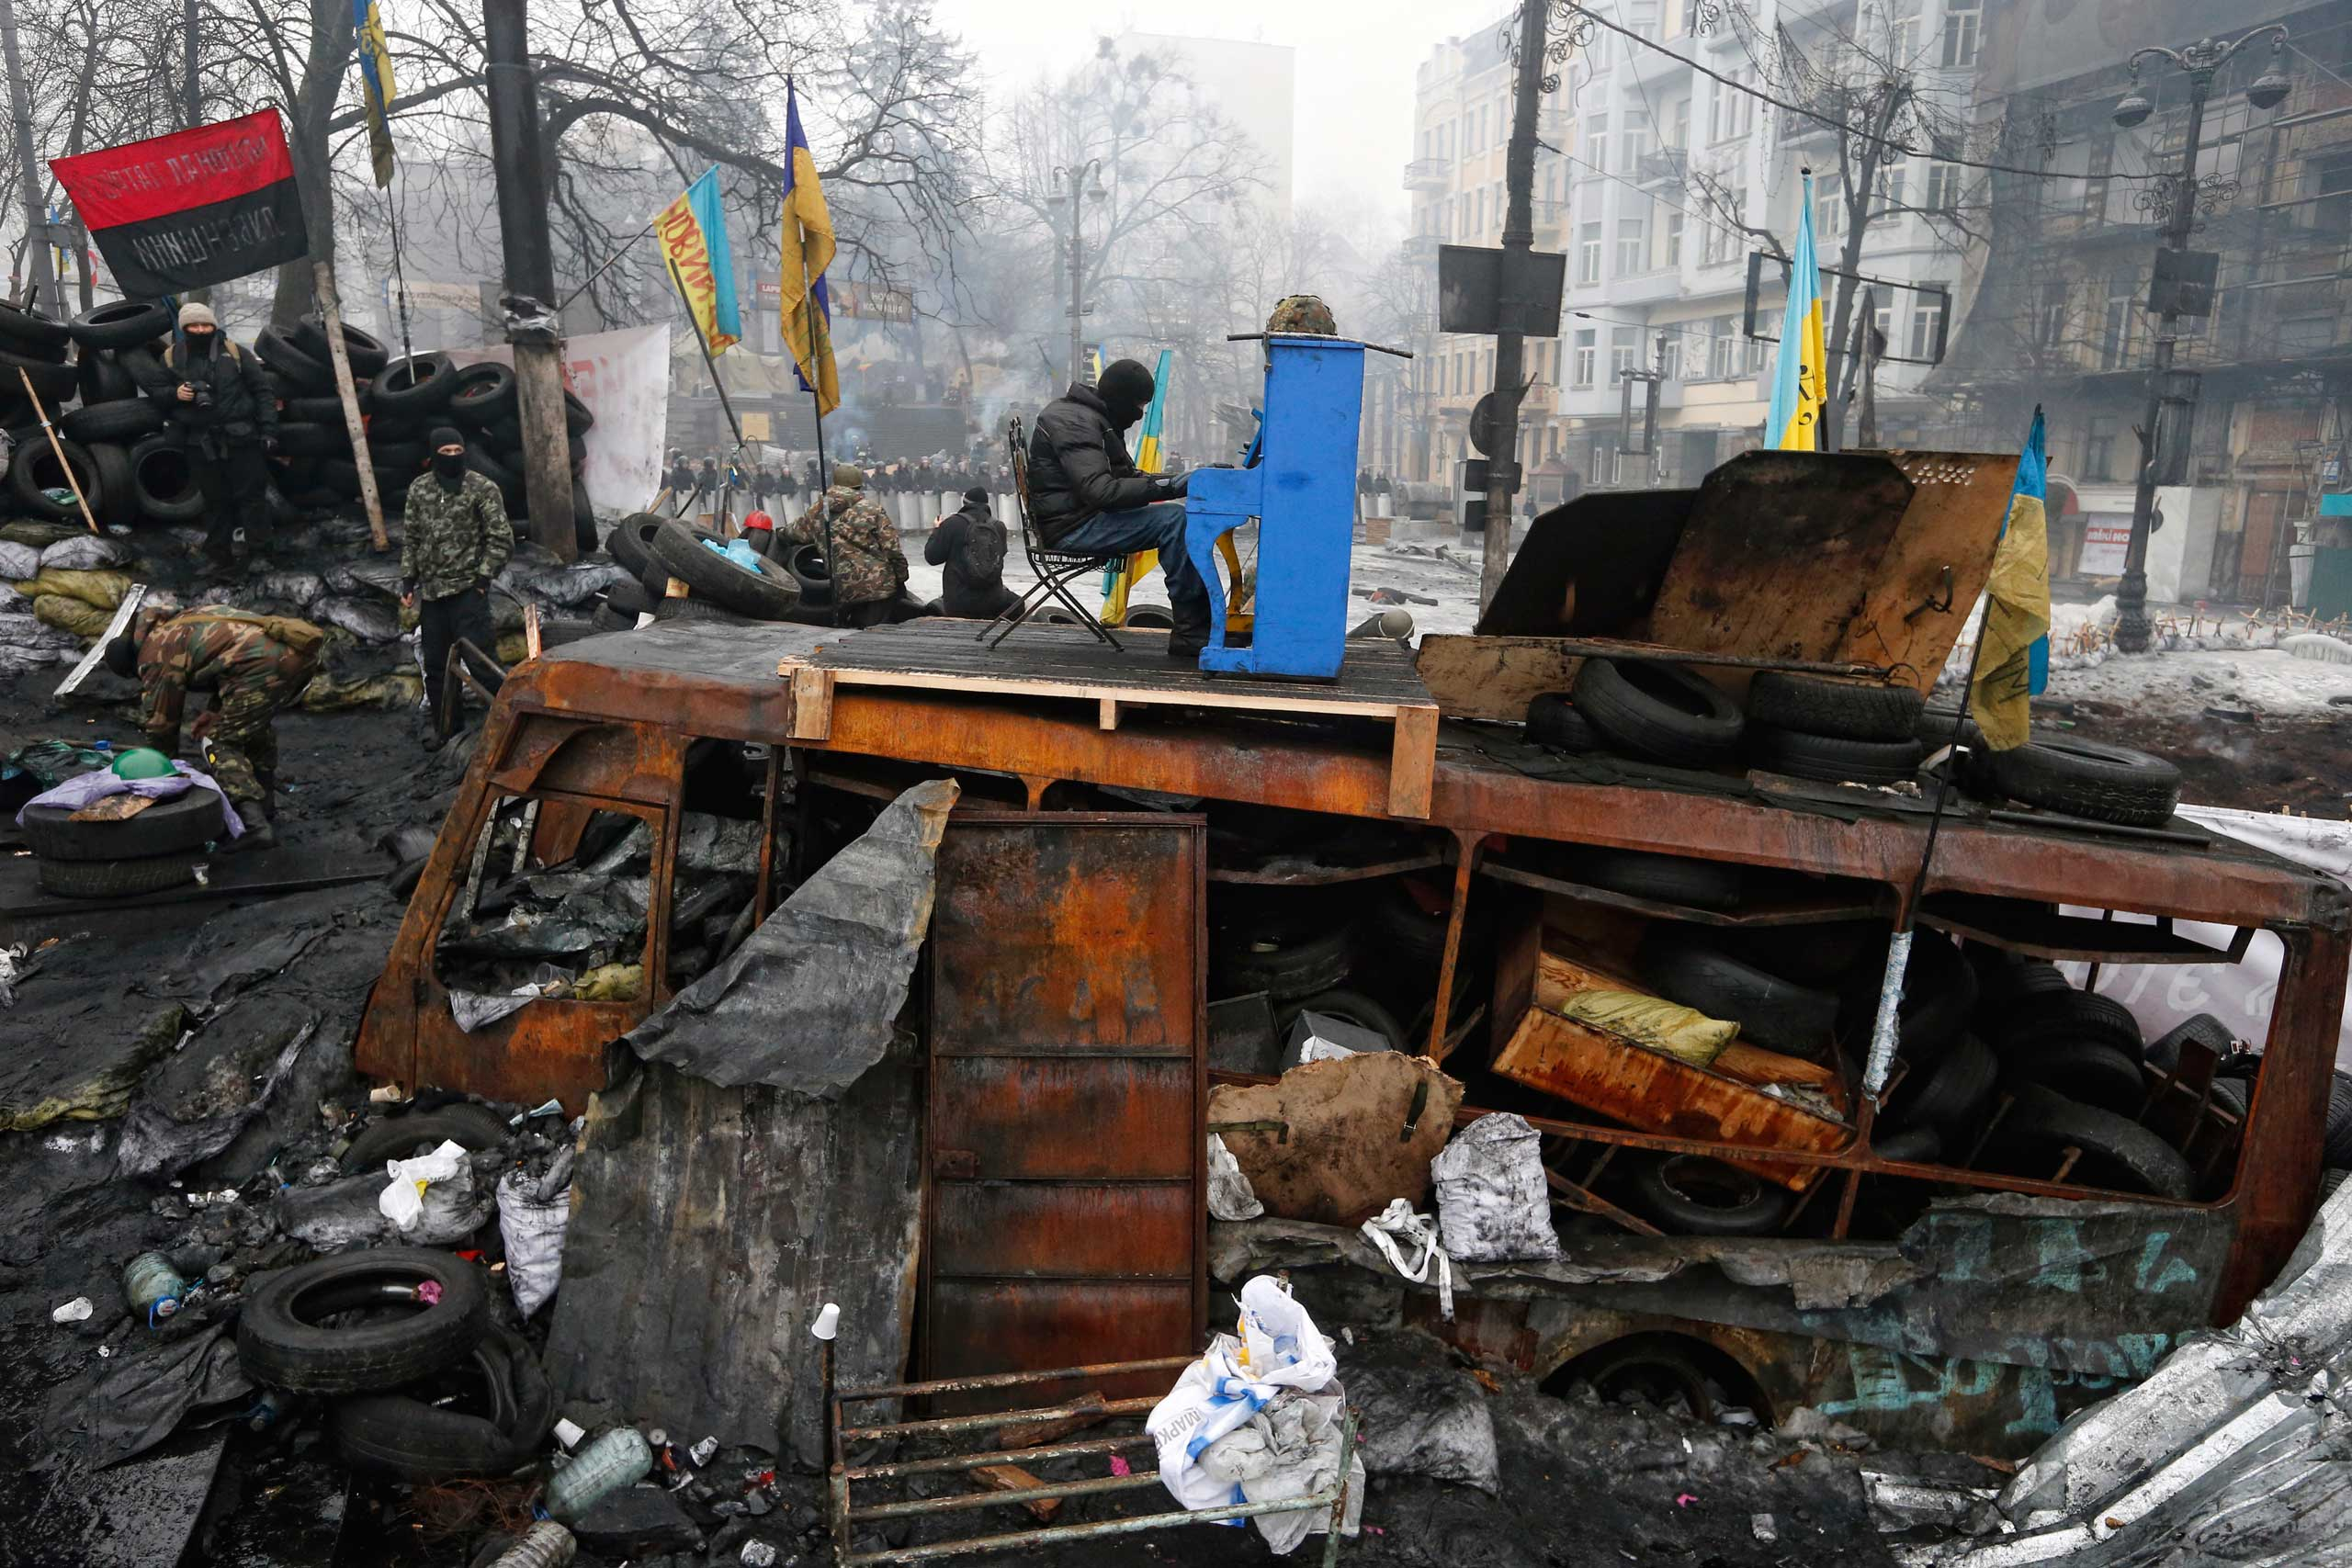 Nominated in the Current Affairs category. Vladyslav Musiienko's work on the protests in Kiev.